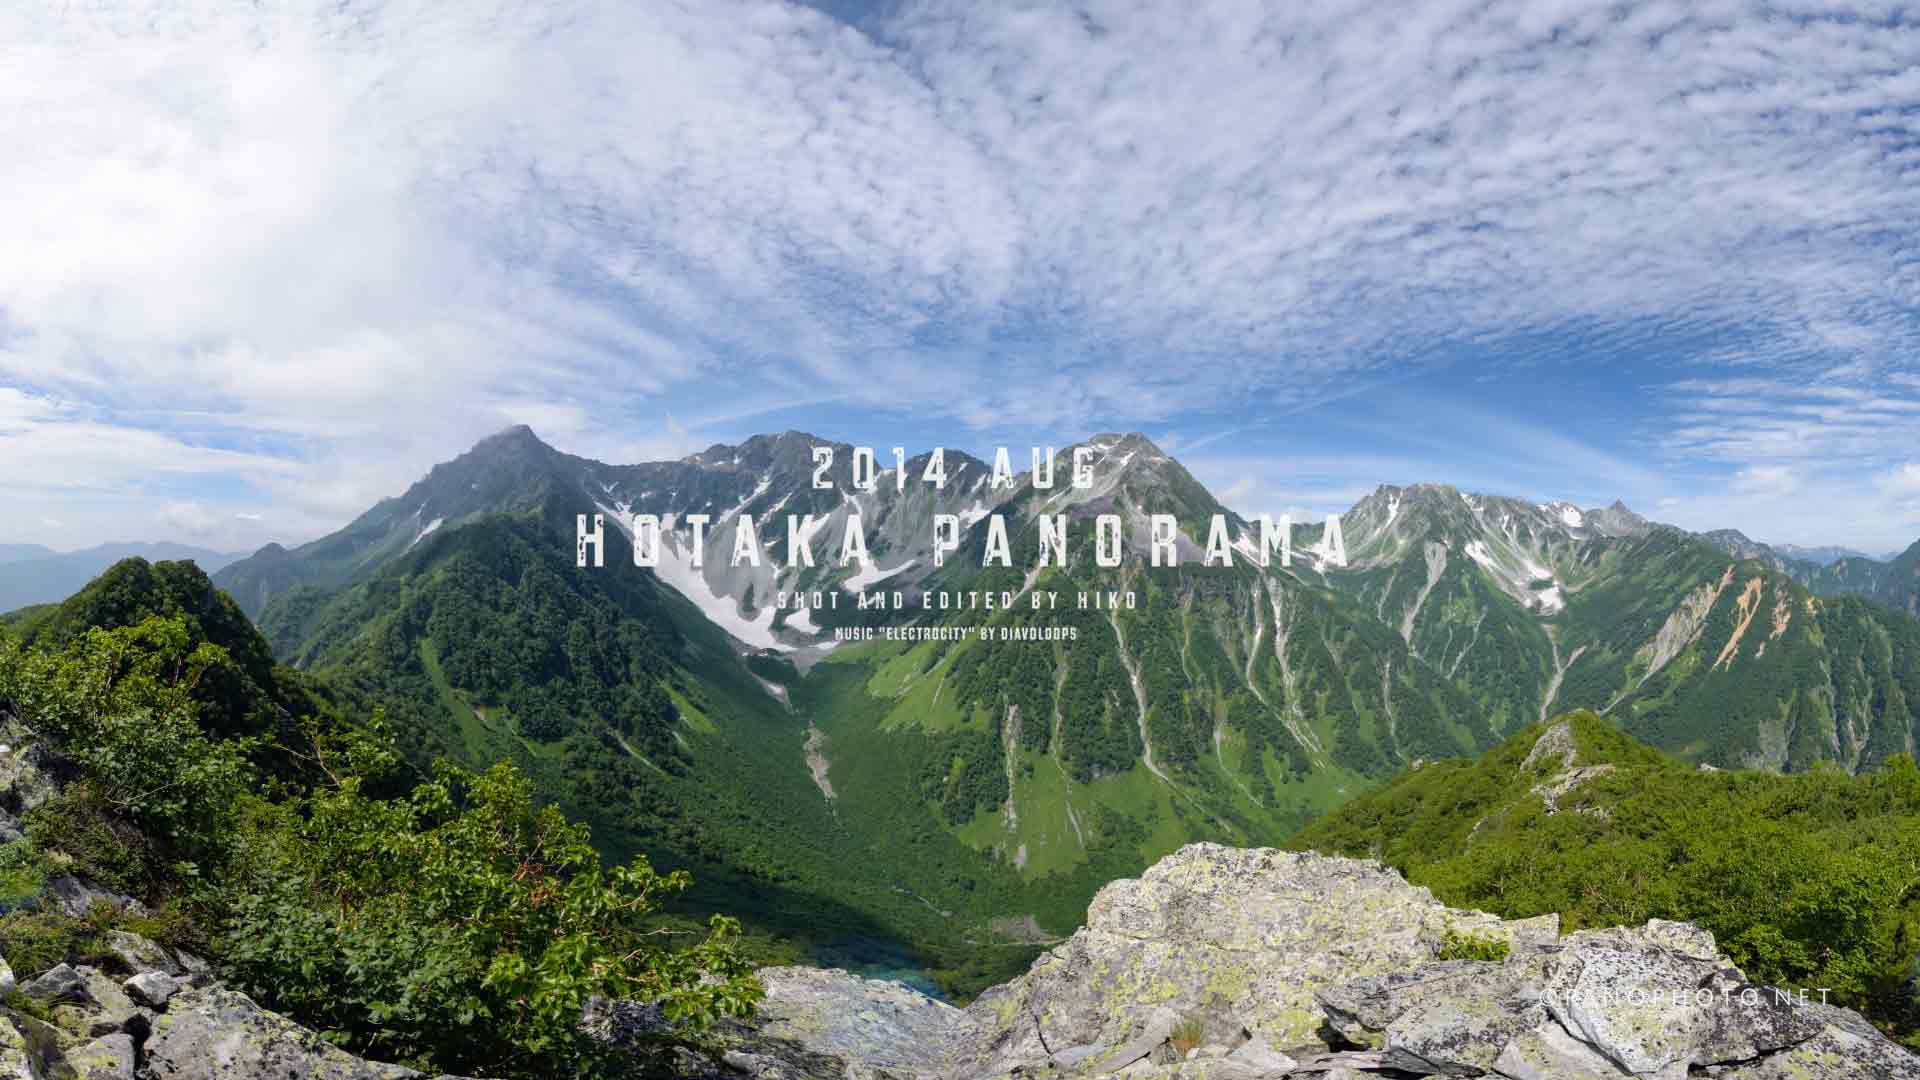 Hotaka-Panorama-Featured-Image